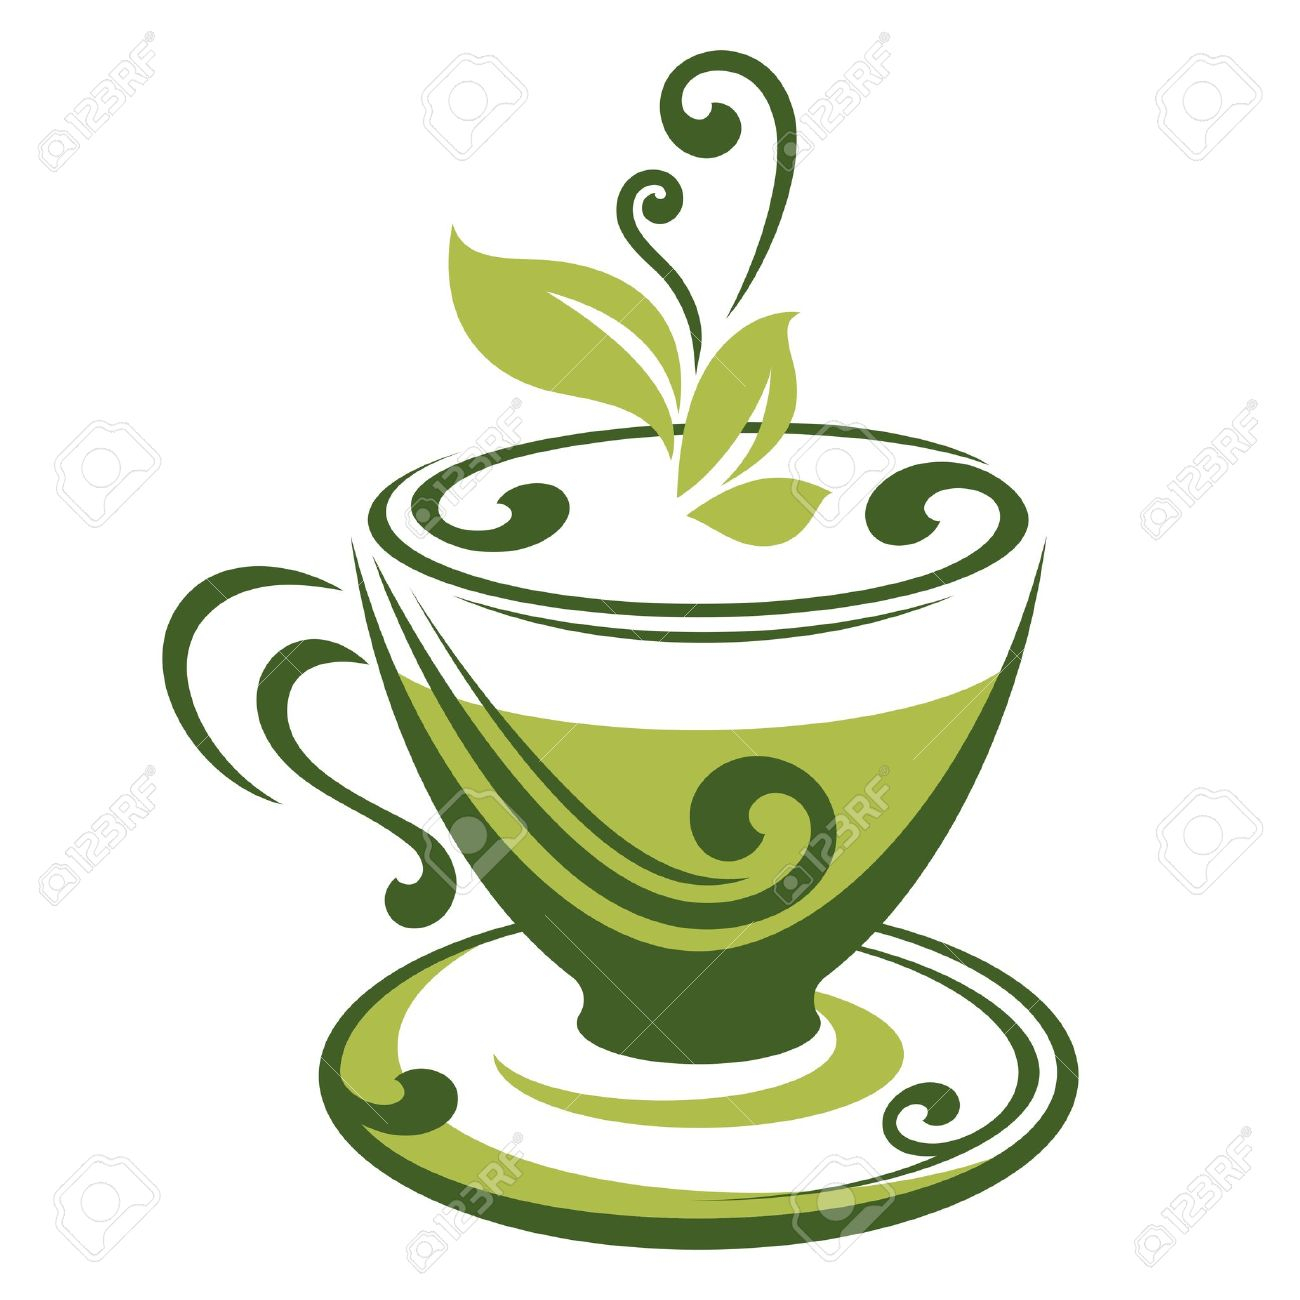 vector icon of green tea cup royalty free cliparts vectors and rh 123rf com tea cup vector image tea cup vector free